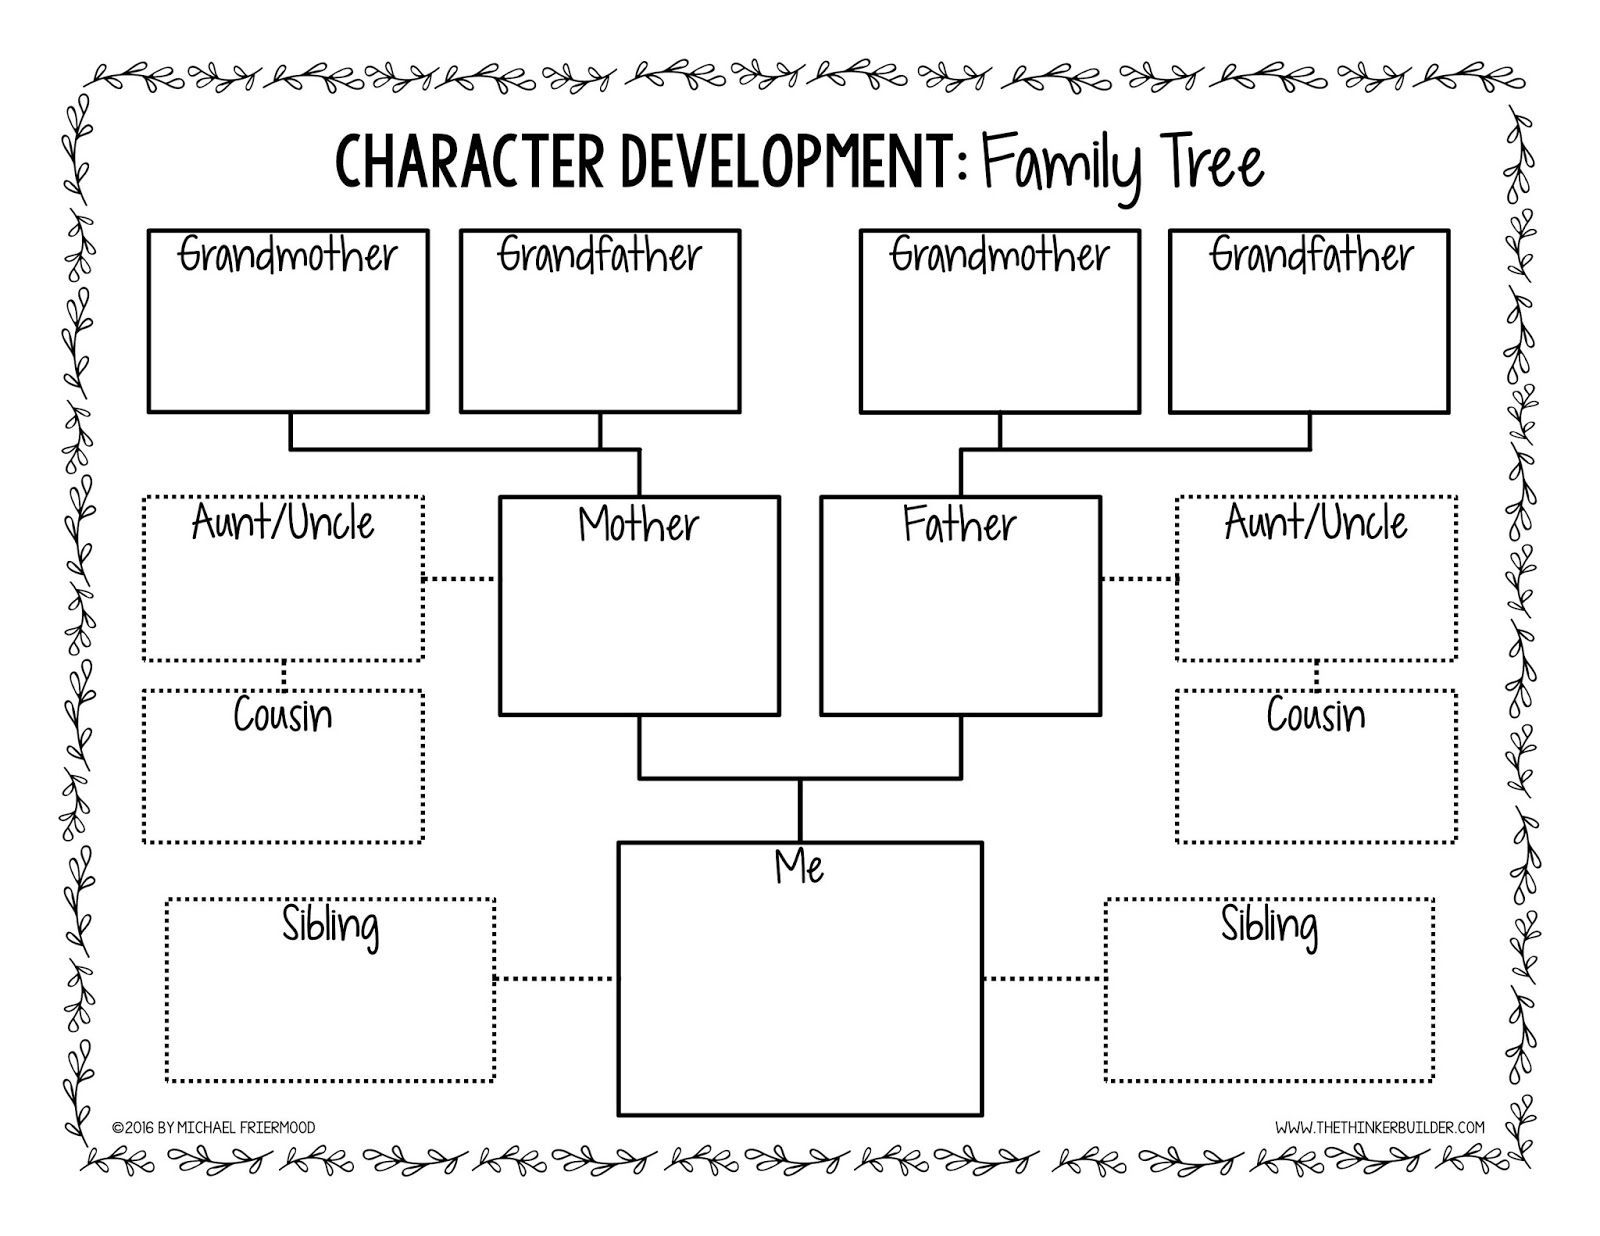 Developing a Character for Fictional Narrative Writing | The Thinker ...